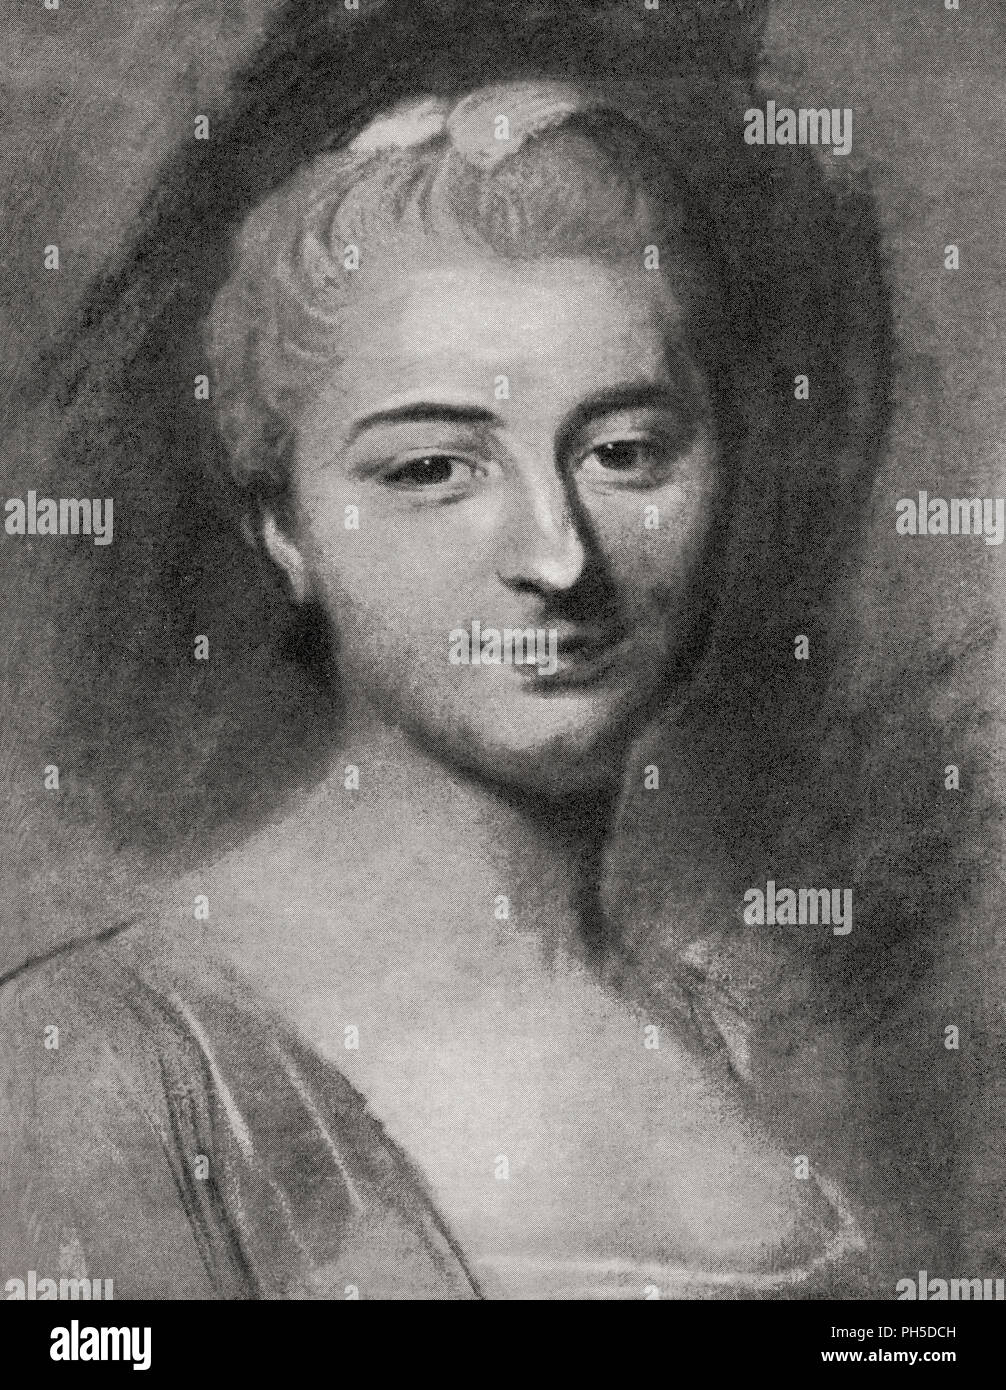 Jeanne Julie Éléonore de Lespinasse, 1732 – 1776.  French salon holder and letter writer.  After a work by French Rococo portraitist, Maurice Quentin de La Tour, (1704 – 1788).  From La Tour, published 1920. - Stock Image